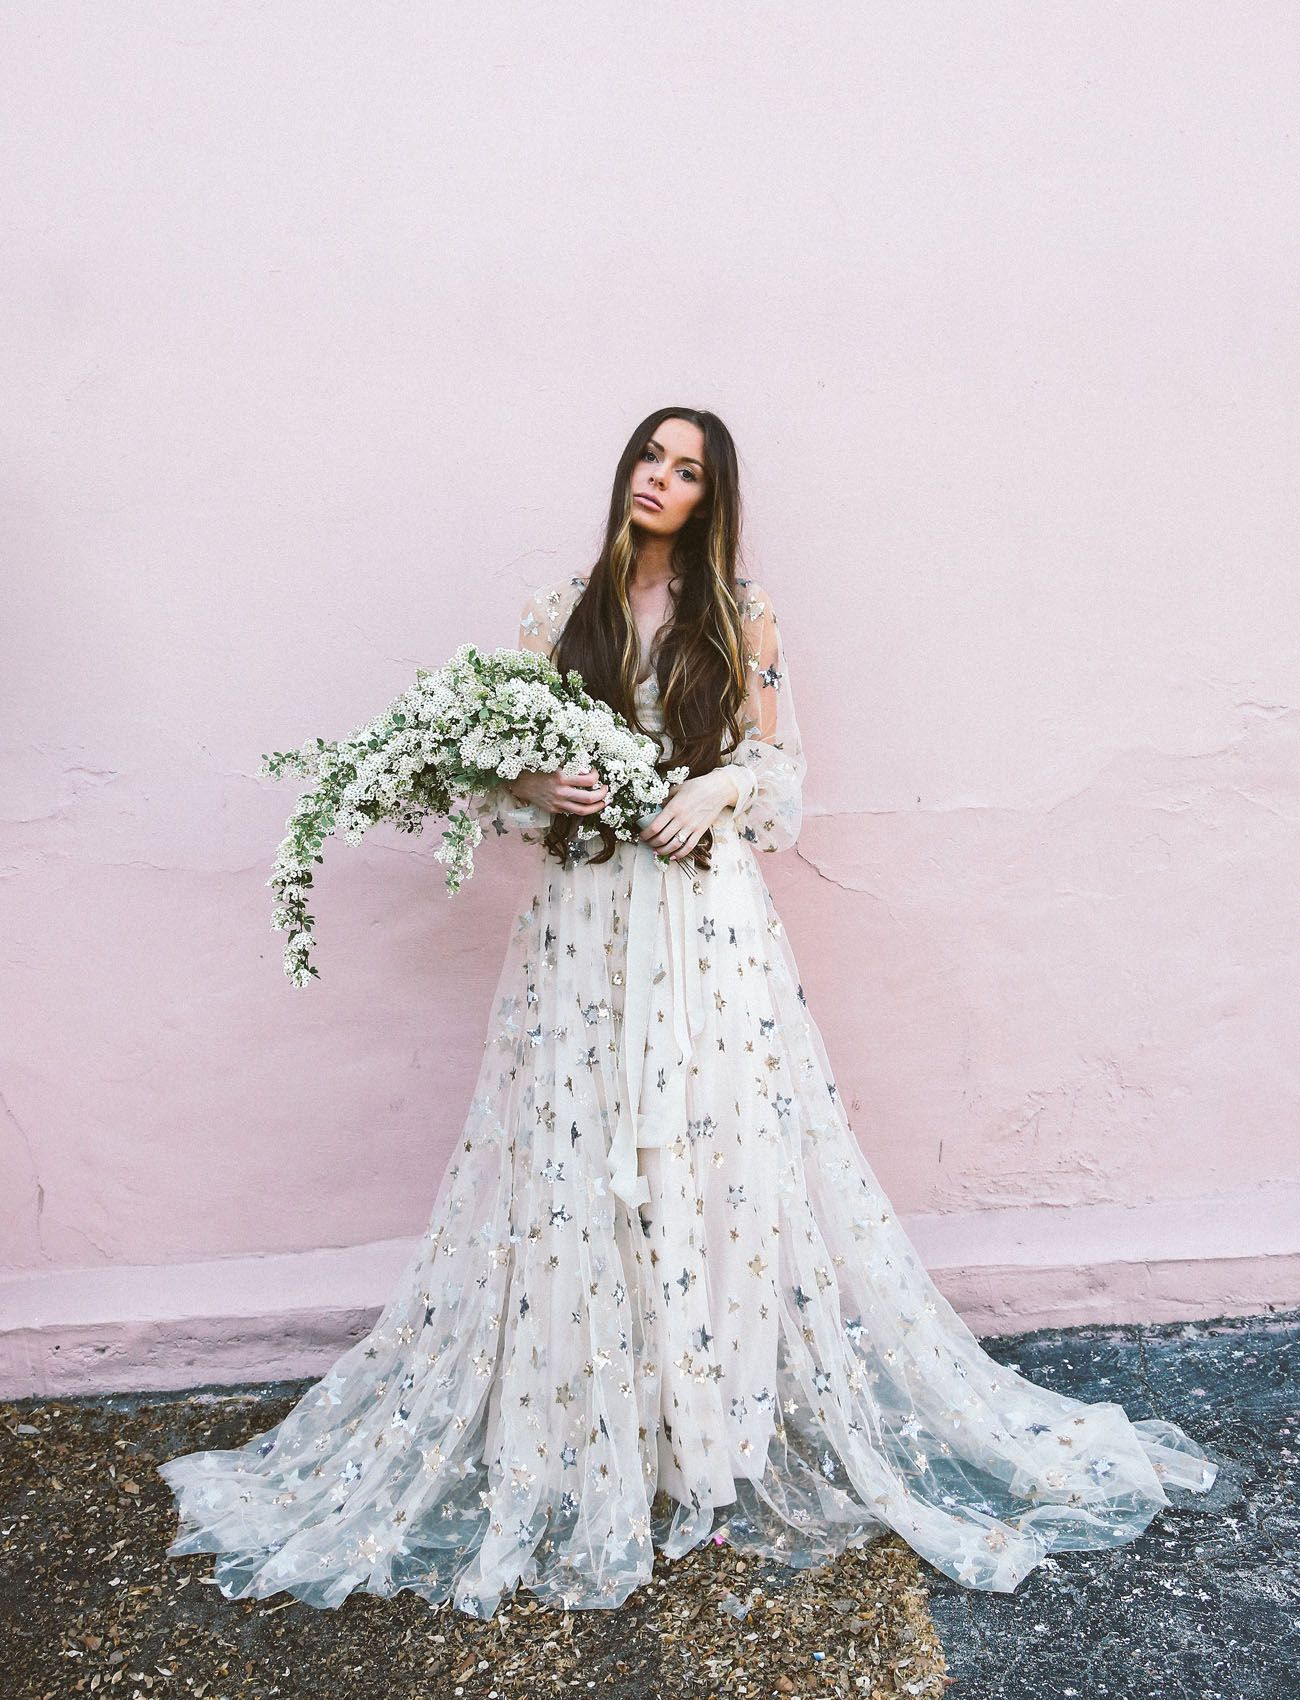 This dress will take you to the stars fairytale wedding